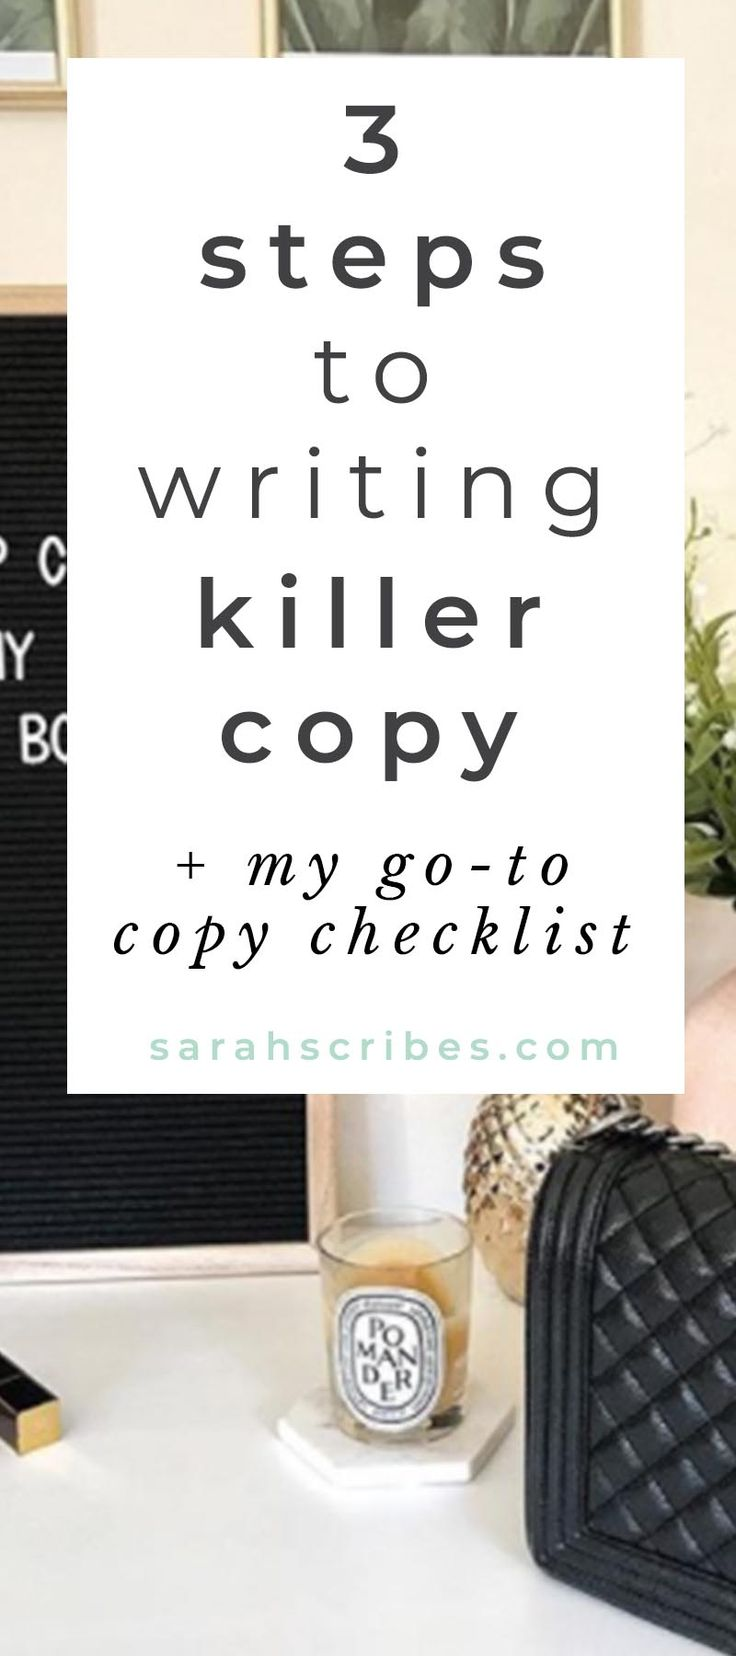 Best Copywriting Tips| Business Tips | Branding | Blogging Tips | Blog | Sarah Louise | Blog Ideas | Entrepreneur | Quotes | Fashion | Writing   #copywriting #writing #quotes